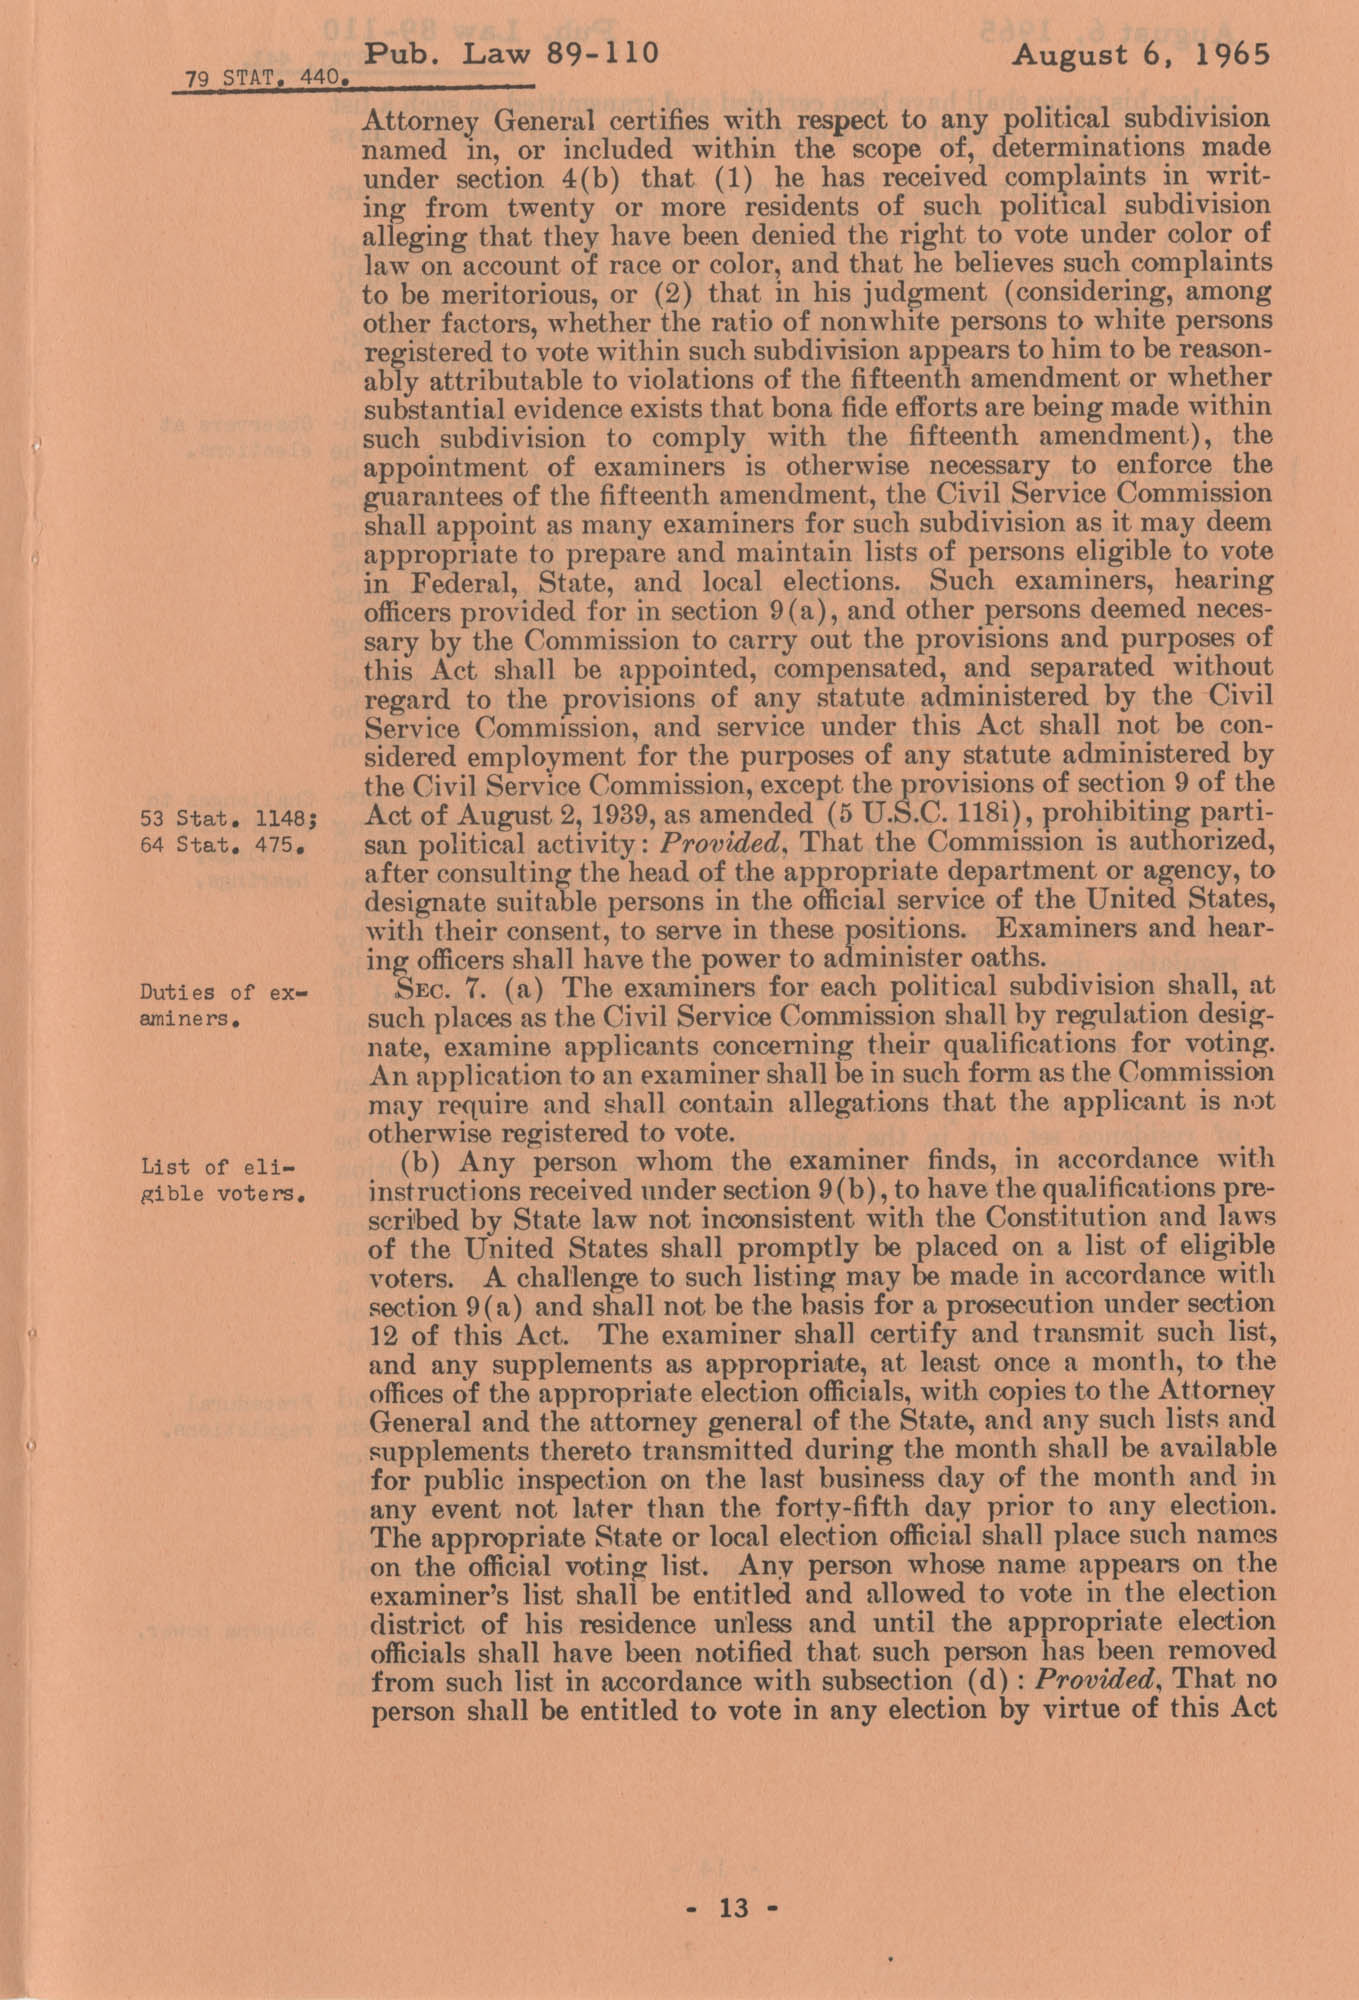 The Voting Rights Act of 1965, Page 13